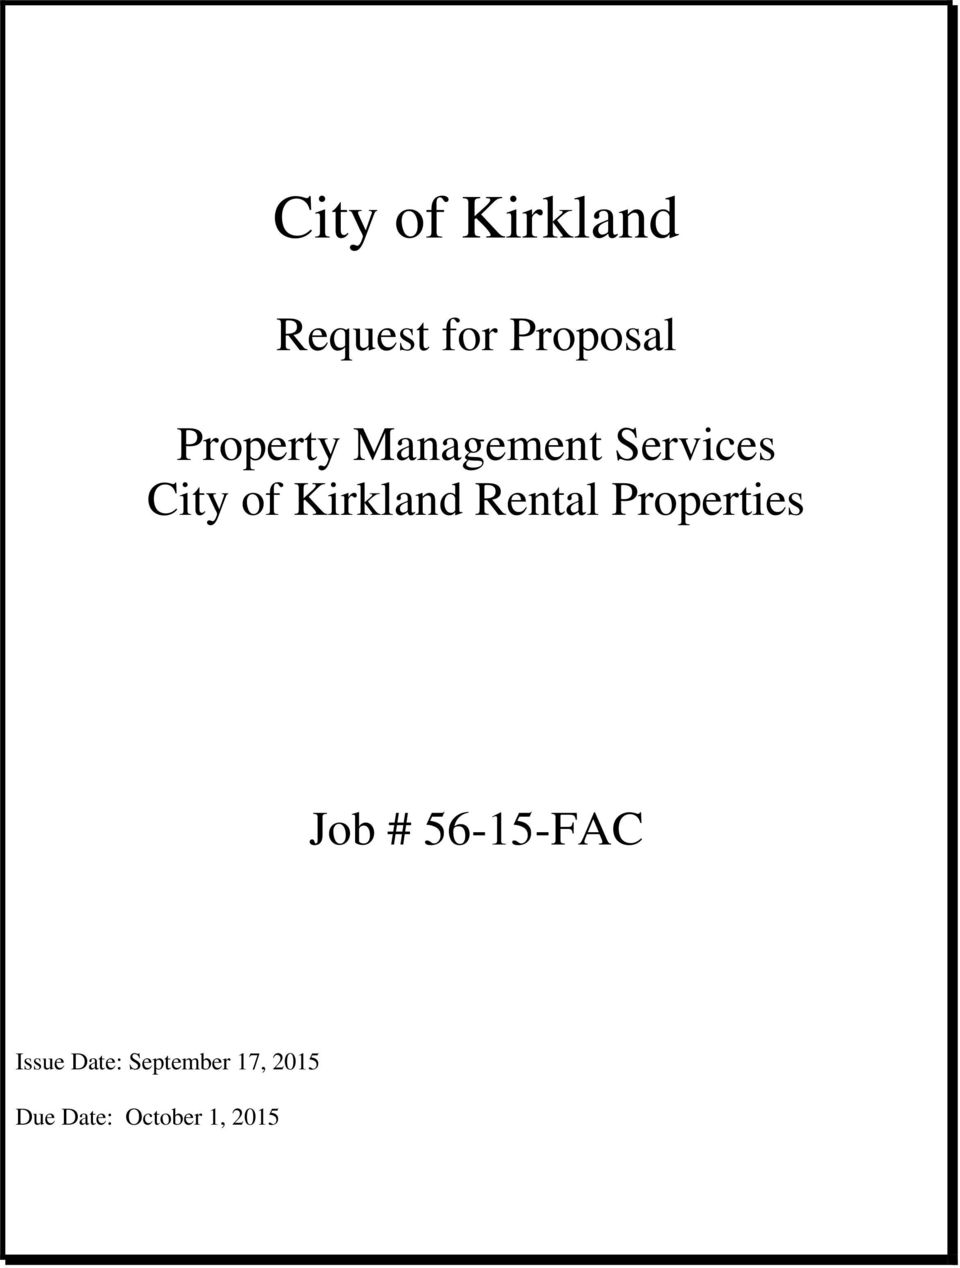 Kirkland Rental Properties Job # 56-15-FAC